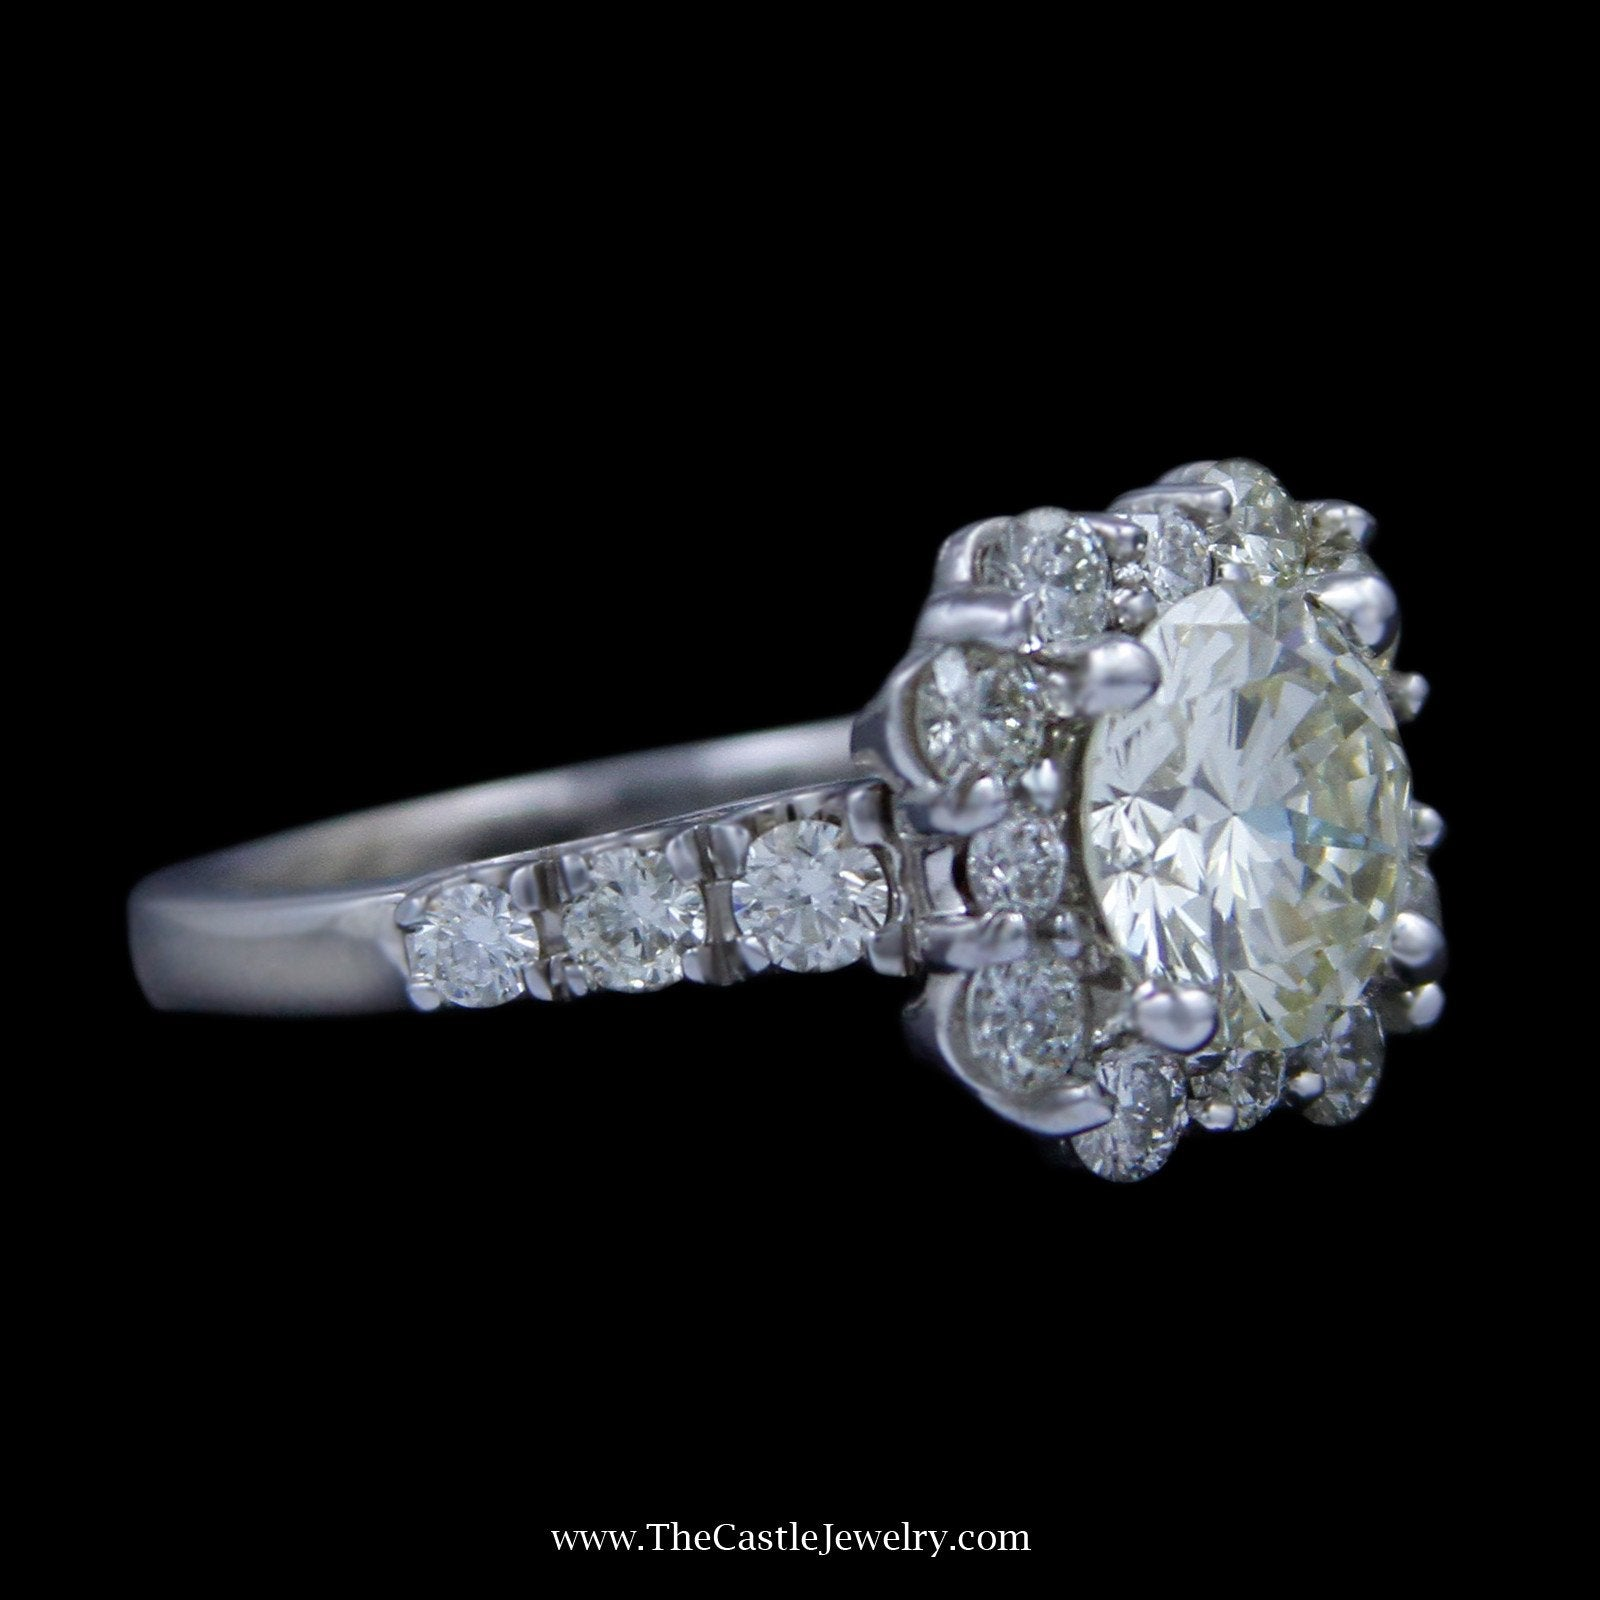 4cttw Round Brilliant Cut Diamond Engagement Ring w/ Unique Diamond Bezel & Sides-2